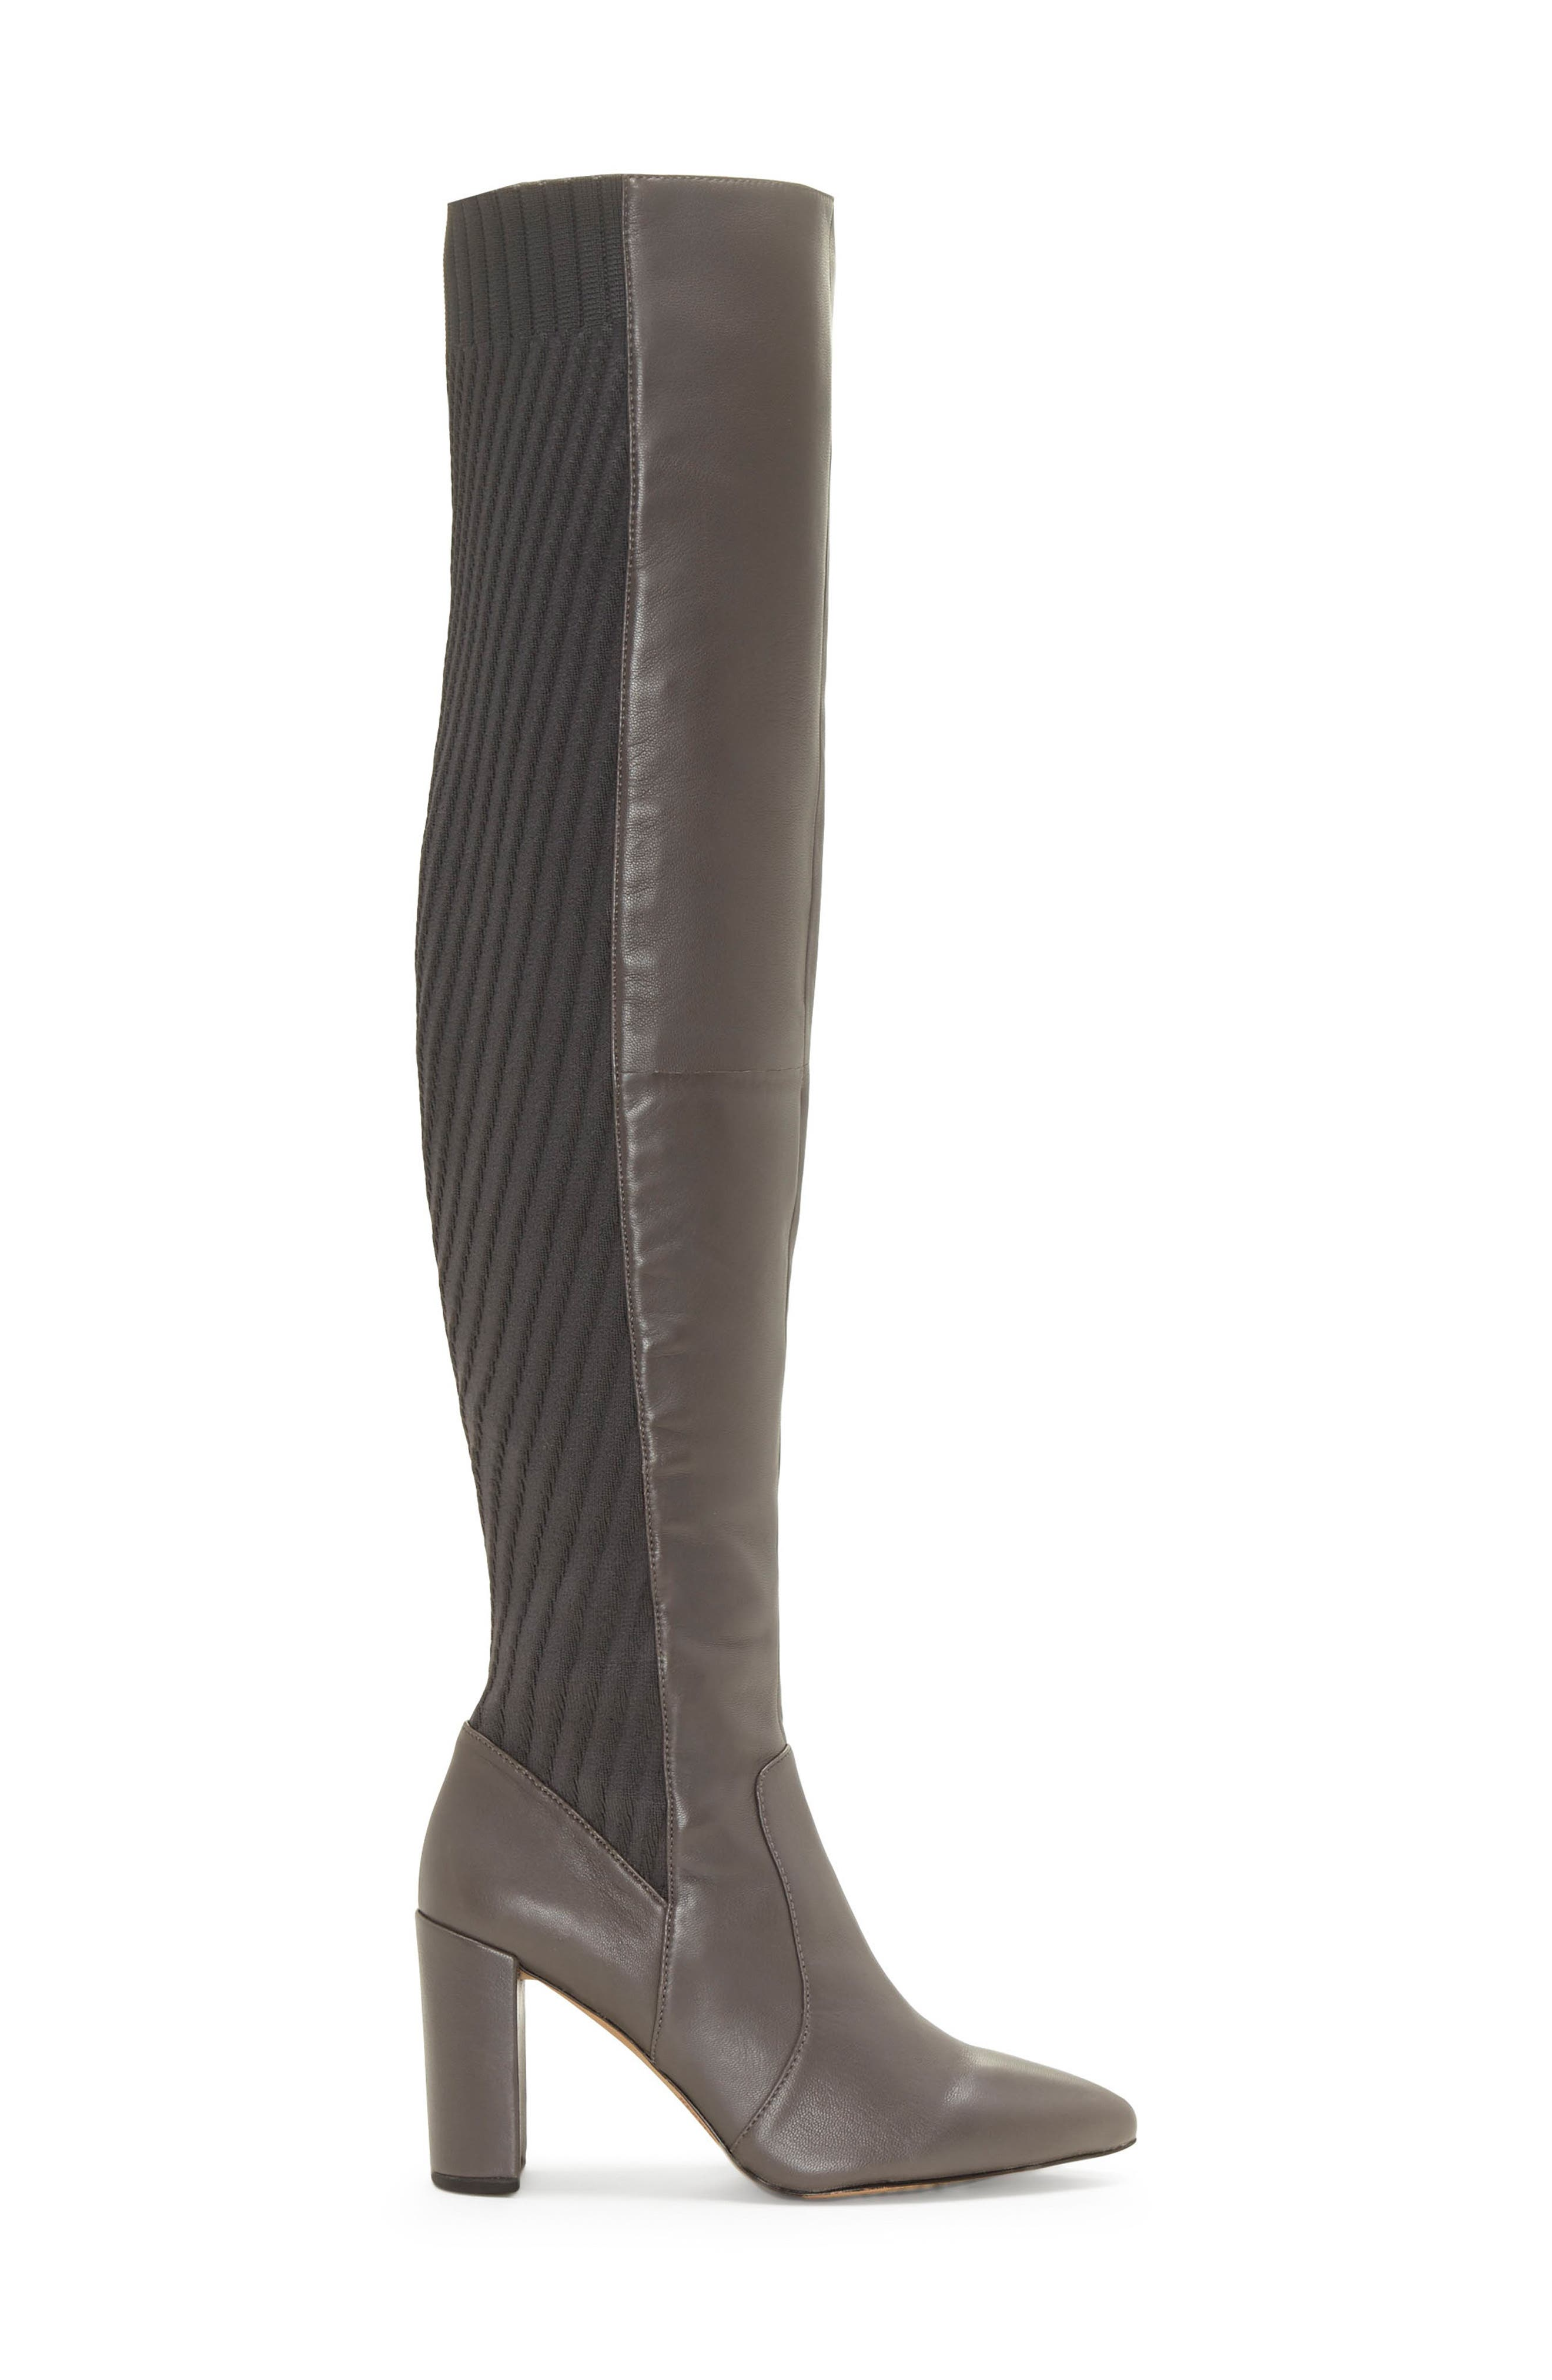 VINCE CAMUTO, Majestie Over the Knee Boot, Alternate thumbnail 3, color, THUNDER LEATHER